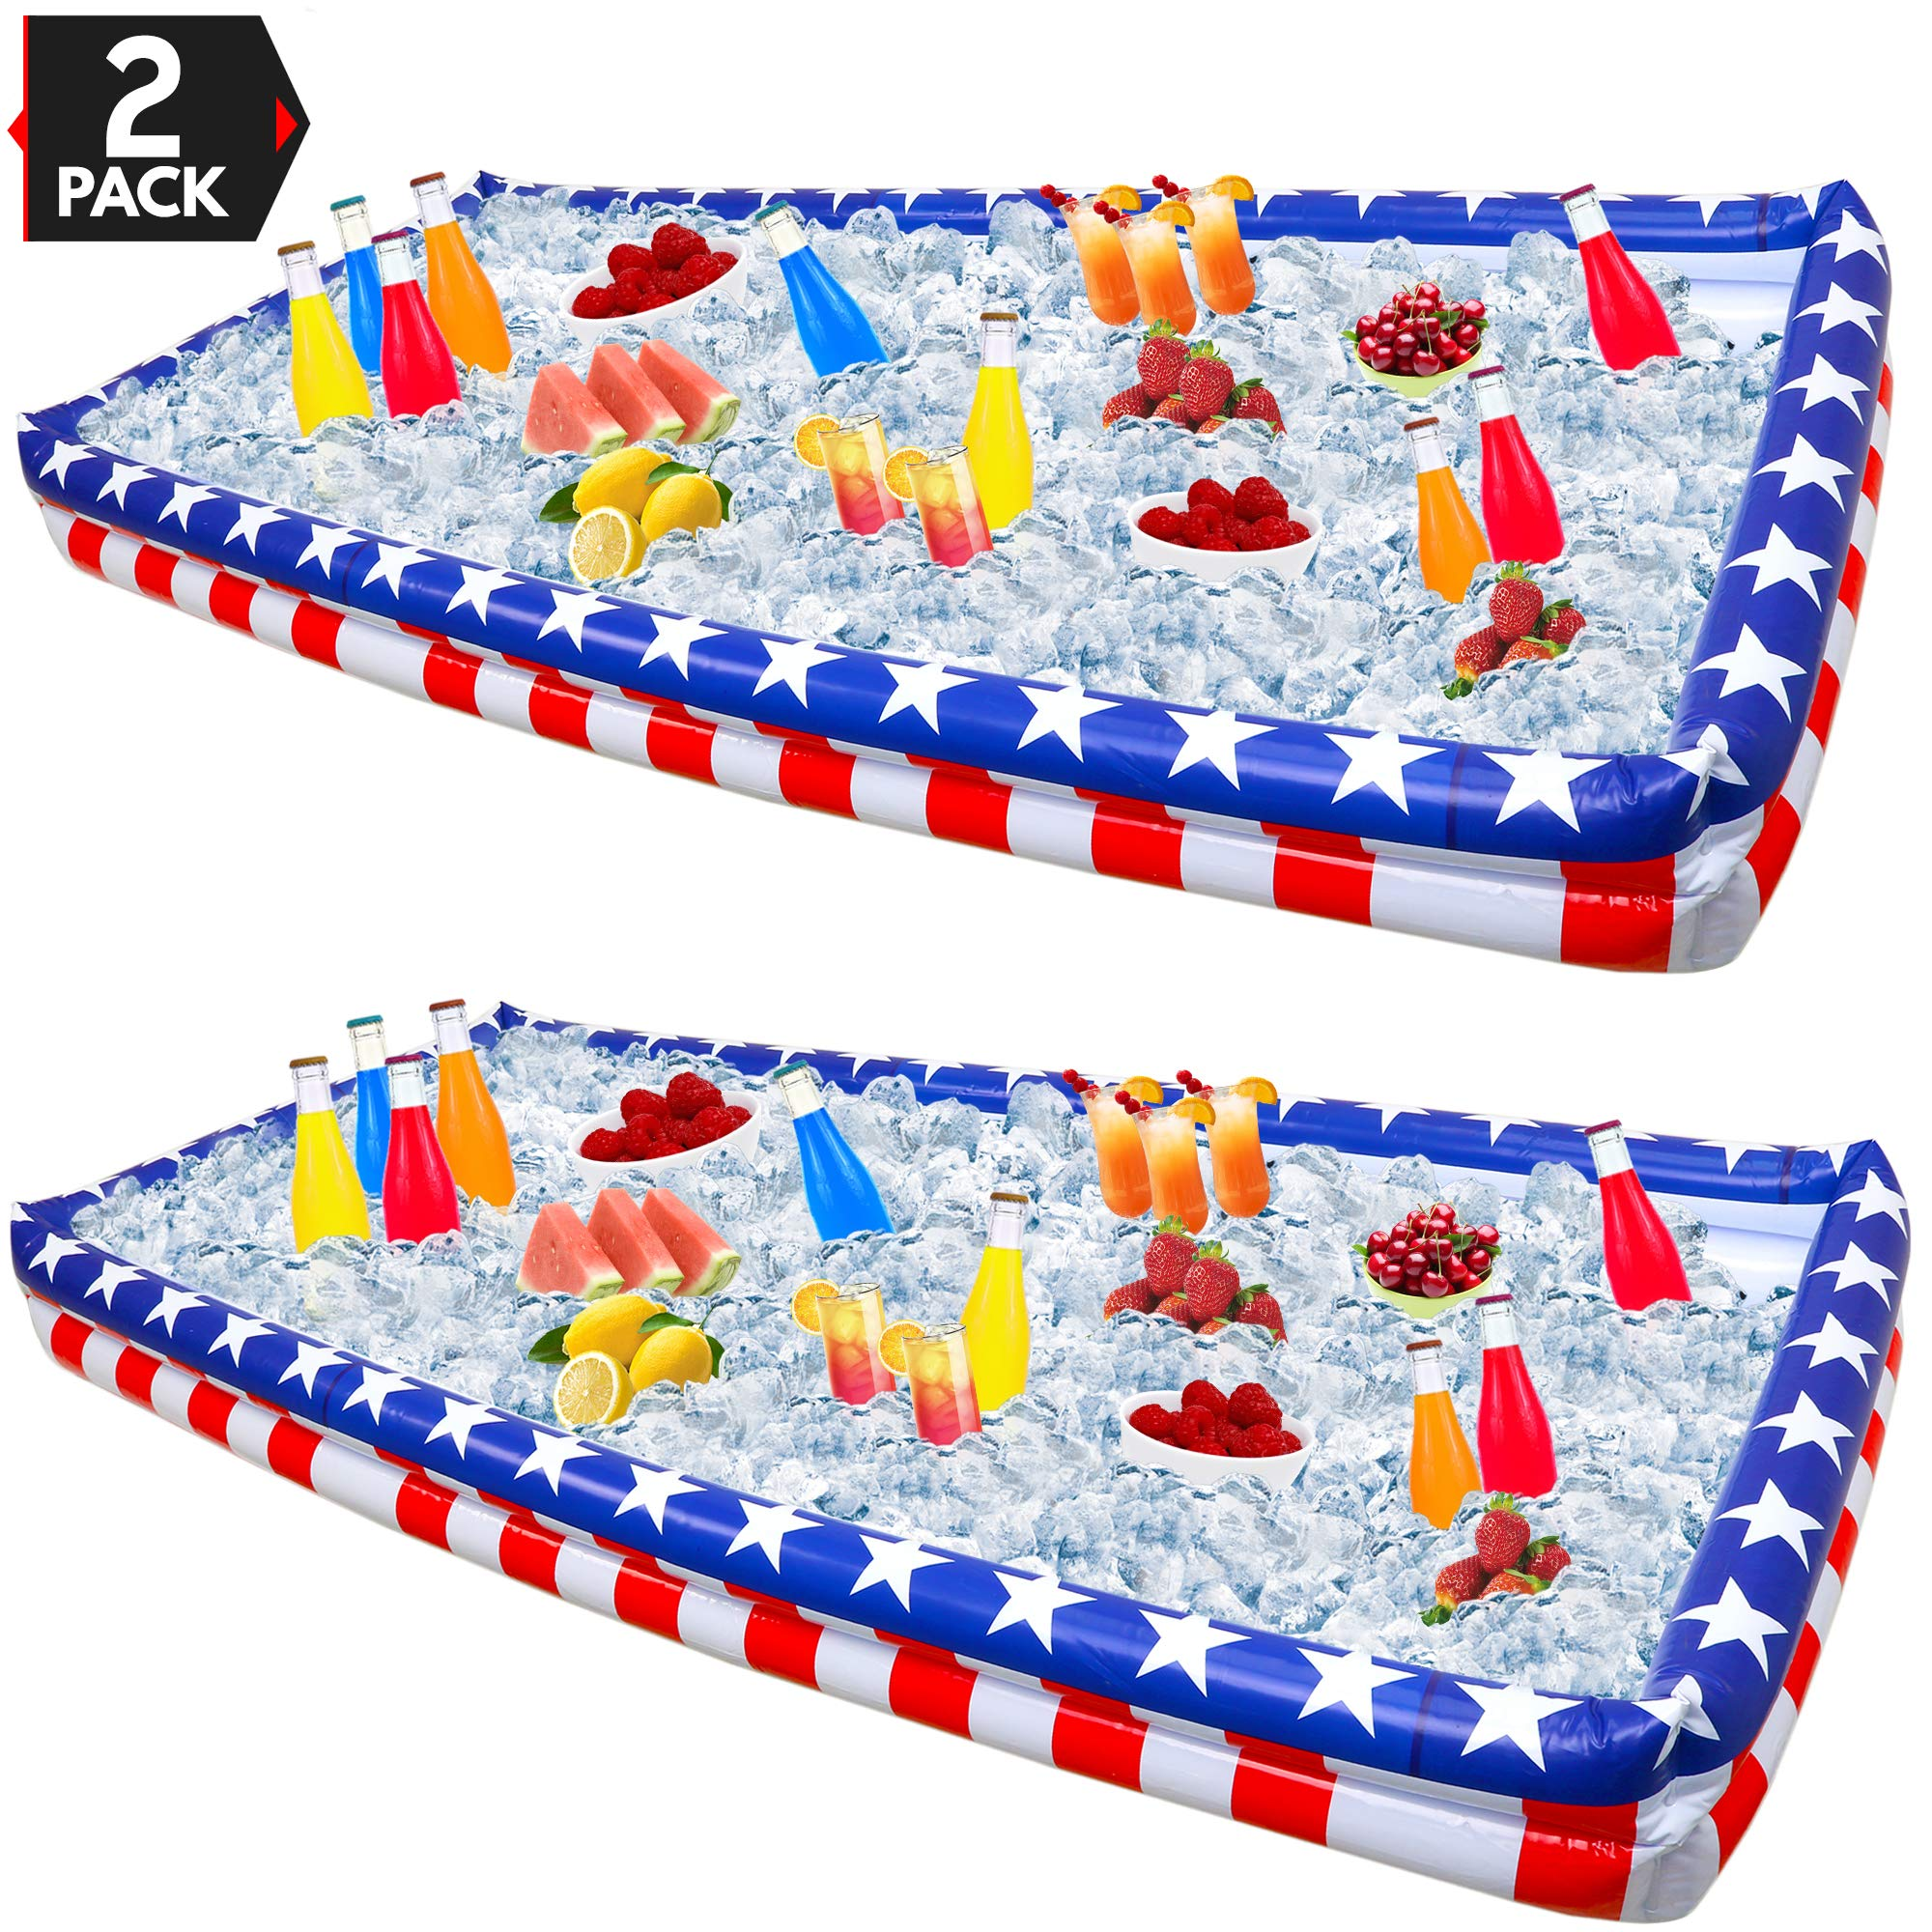 Outdoor Inflatable Buffet Cooler Server - Patriotic Red White and Blue Blow Up Cooling Tub for Serving Buffet Style Picnic - Pack of 2 by Big Mo's Toys (Image #1)